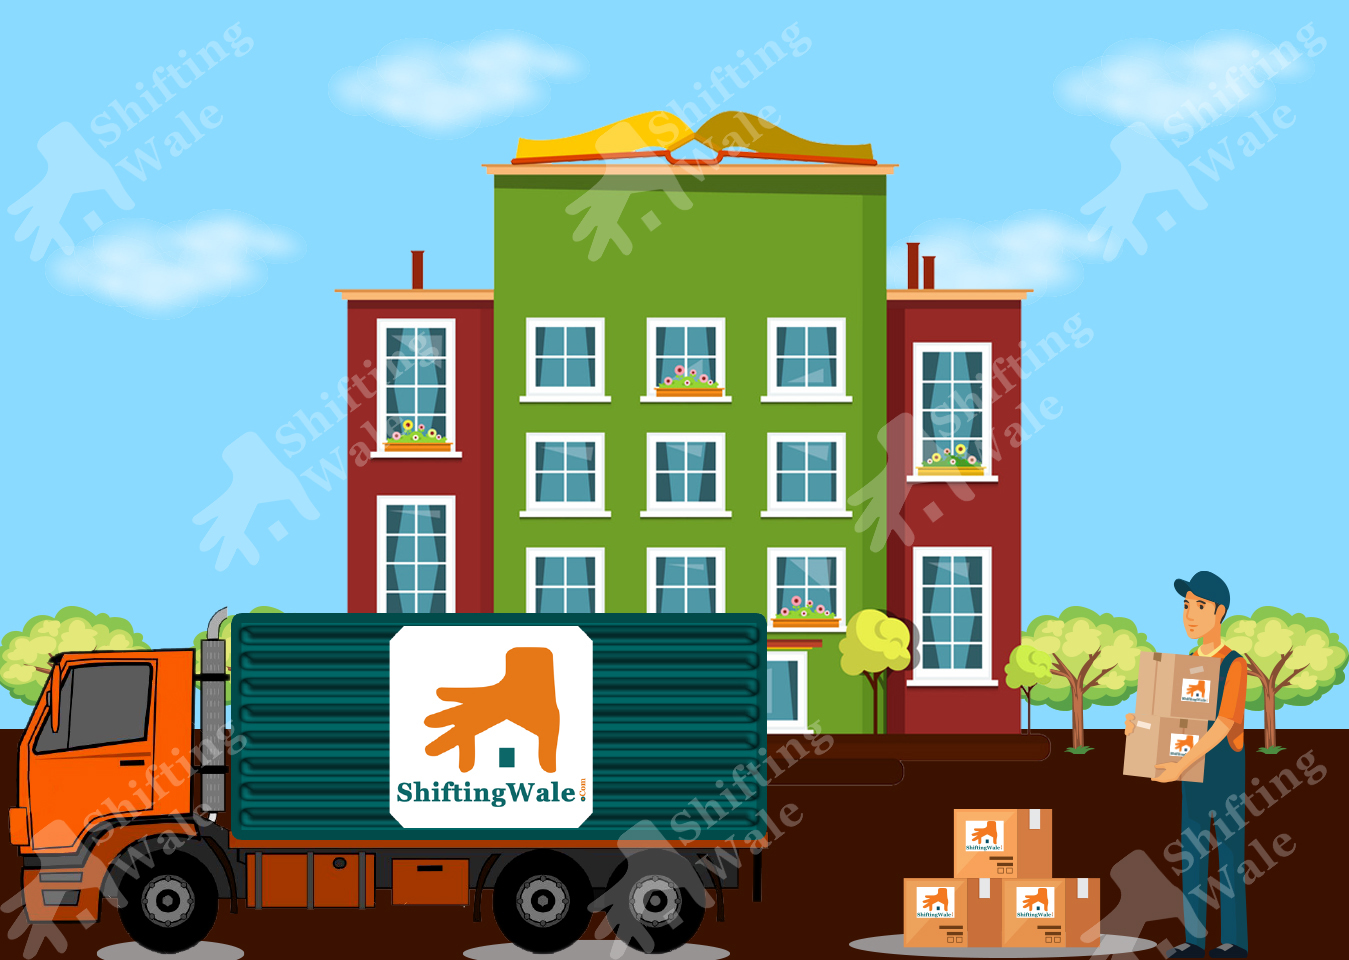 Navi Mumbai to Pathankot Trusted Movers and Packers Services Safely Timely Relocation